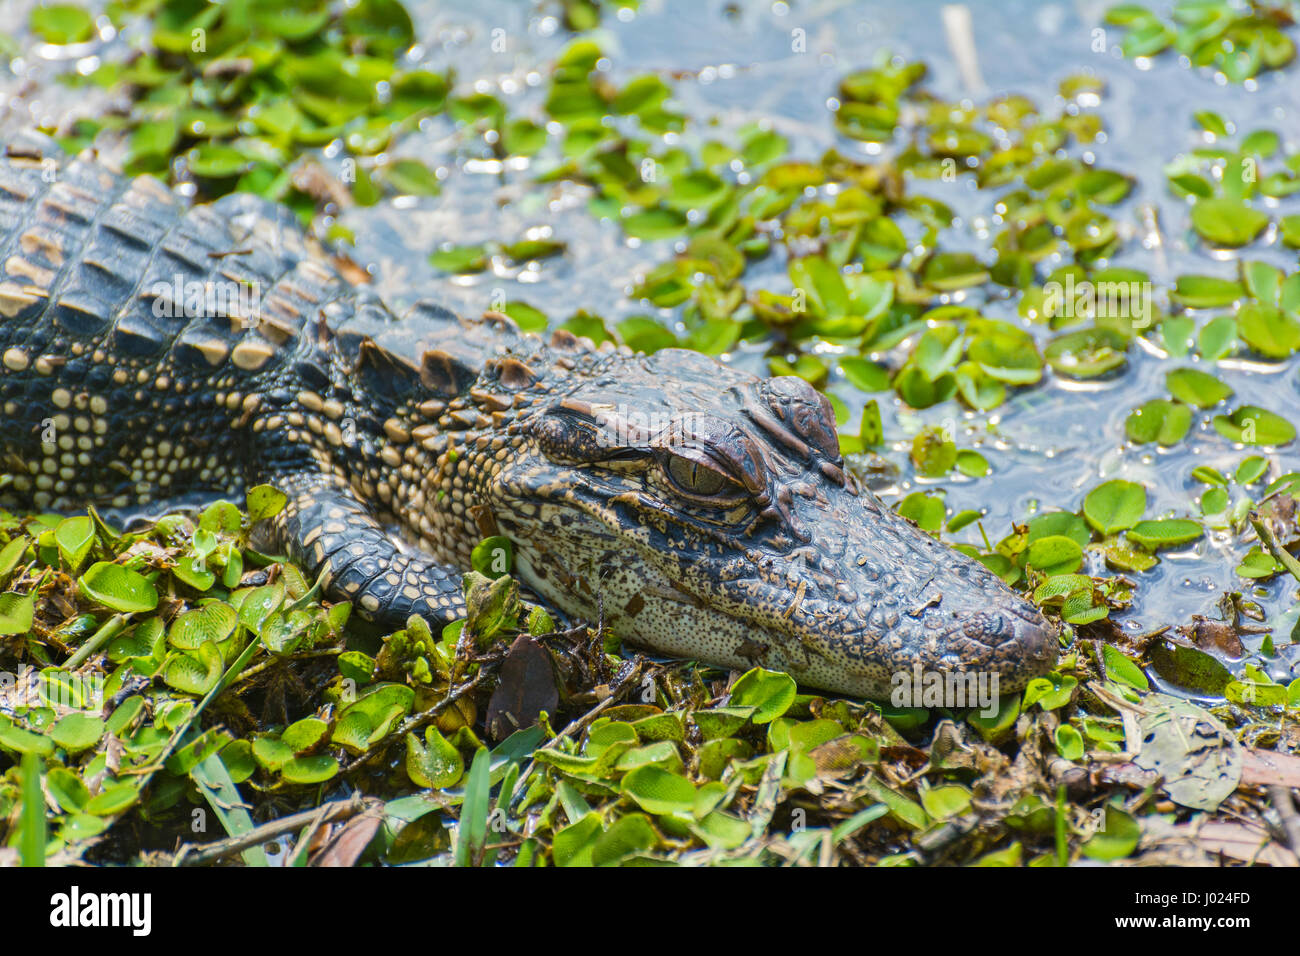 Louisiana, Avery Island, Jungle Gardens,  juvenile American Alligator (Alligator mississippiensis) - Stock Image